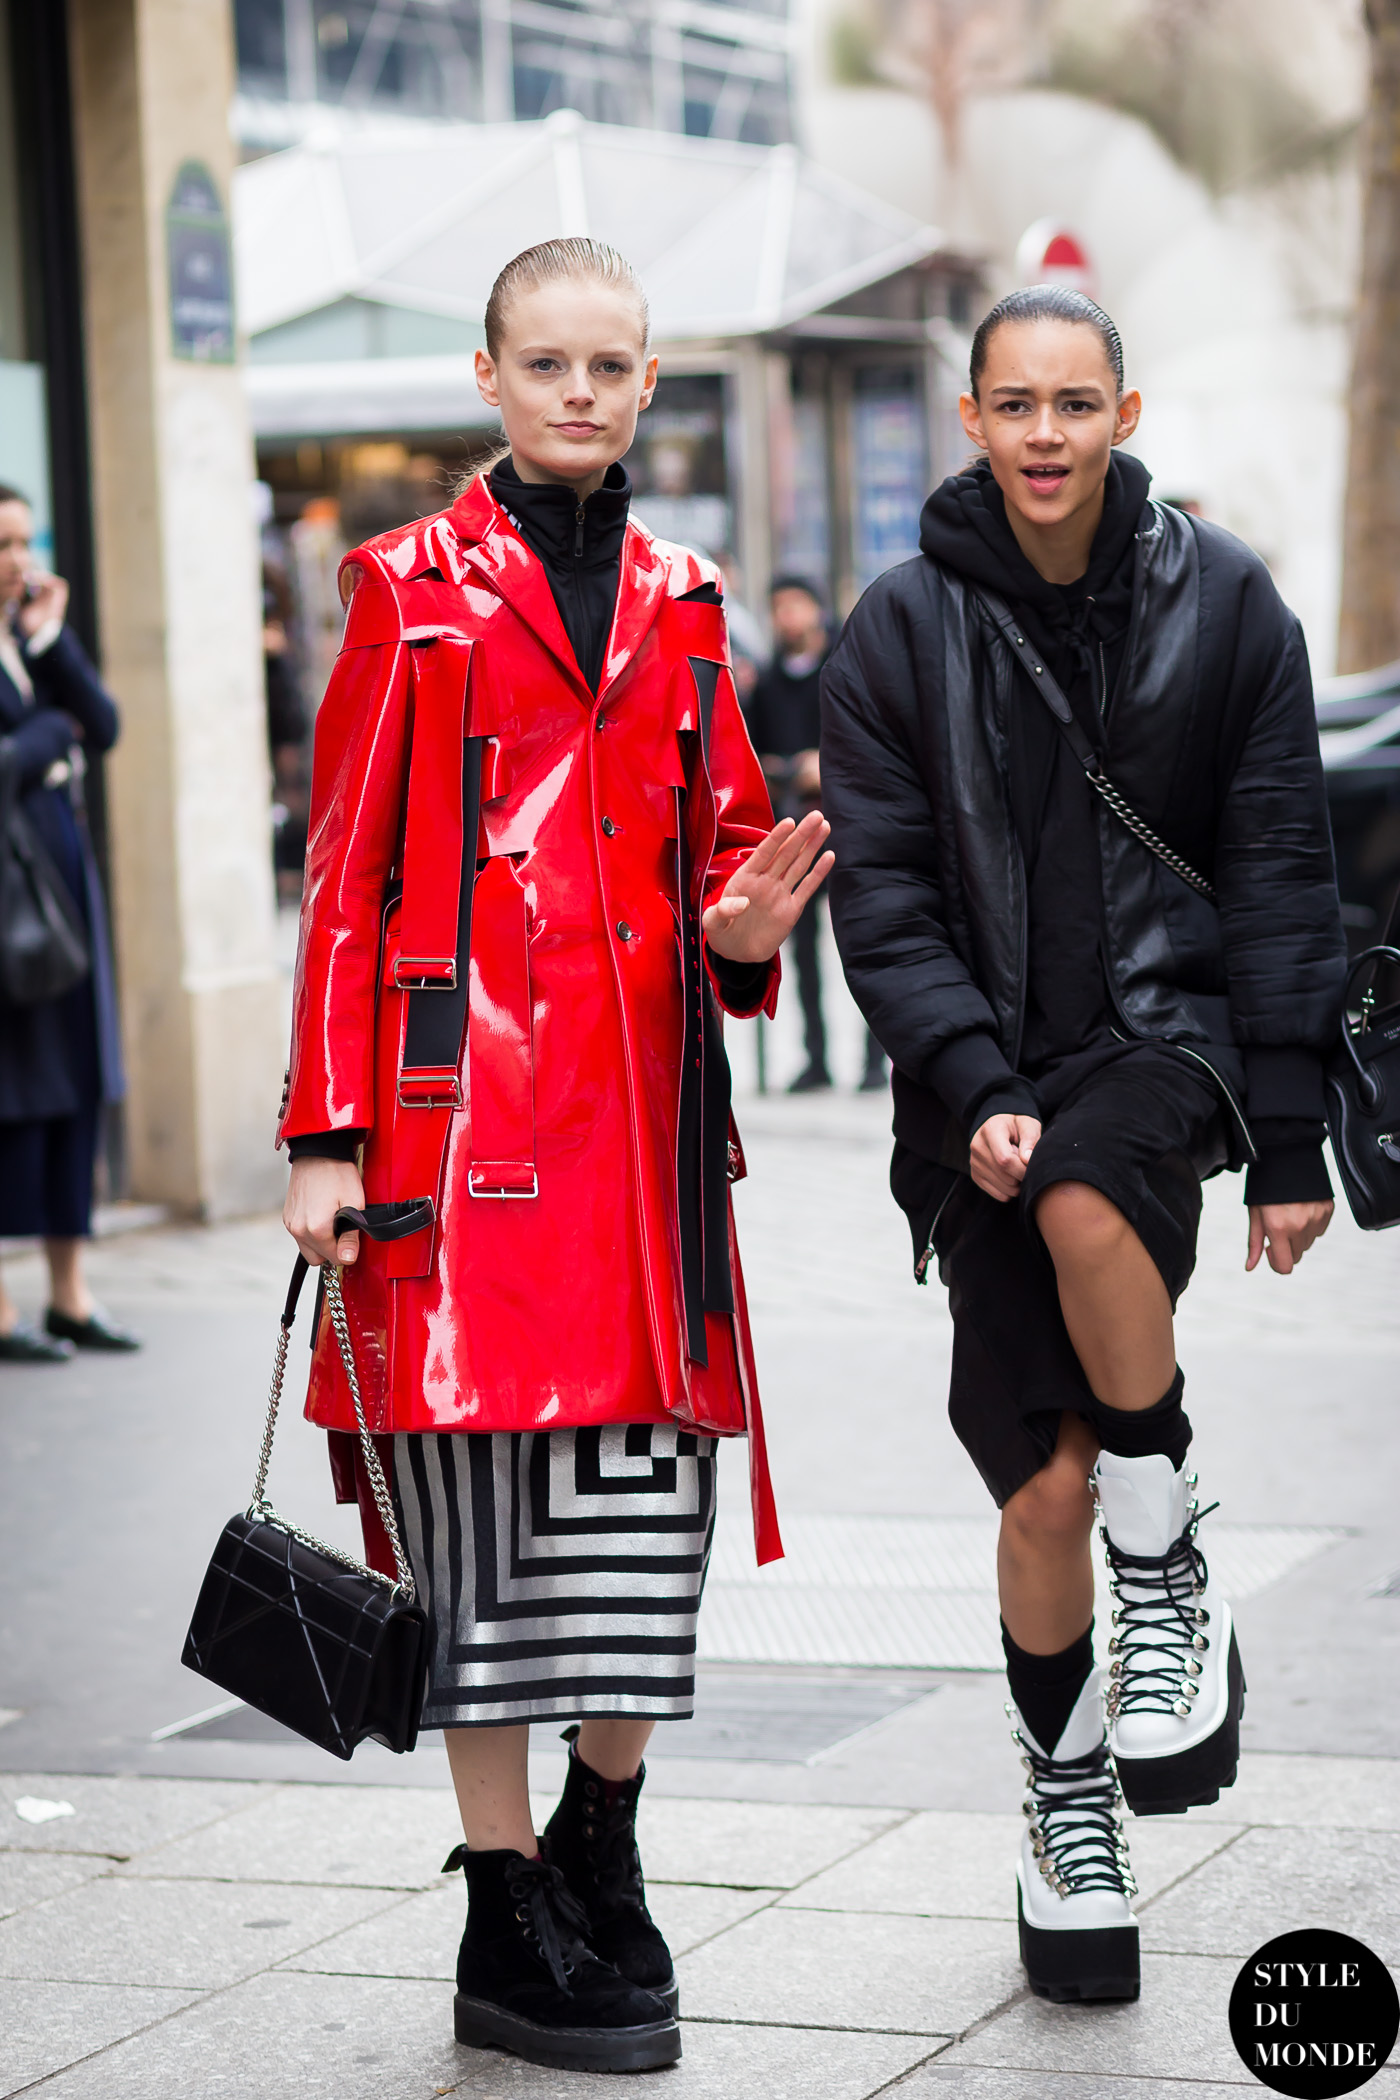 Hanne Gaby Odiele and Binx Walton Street Style Street Fashion Streetsnaps by STYLEDUMONDE Street Style Fashion Blog